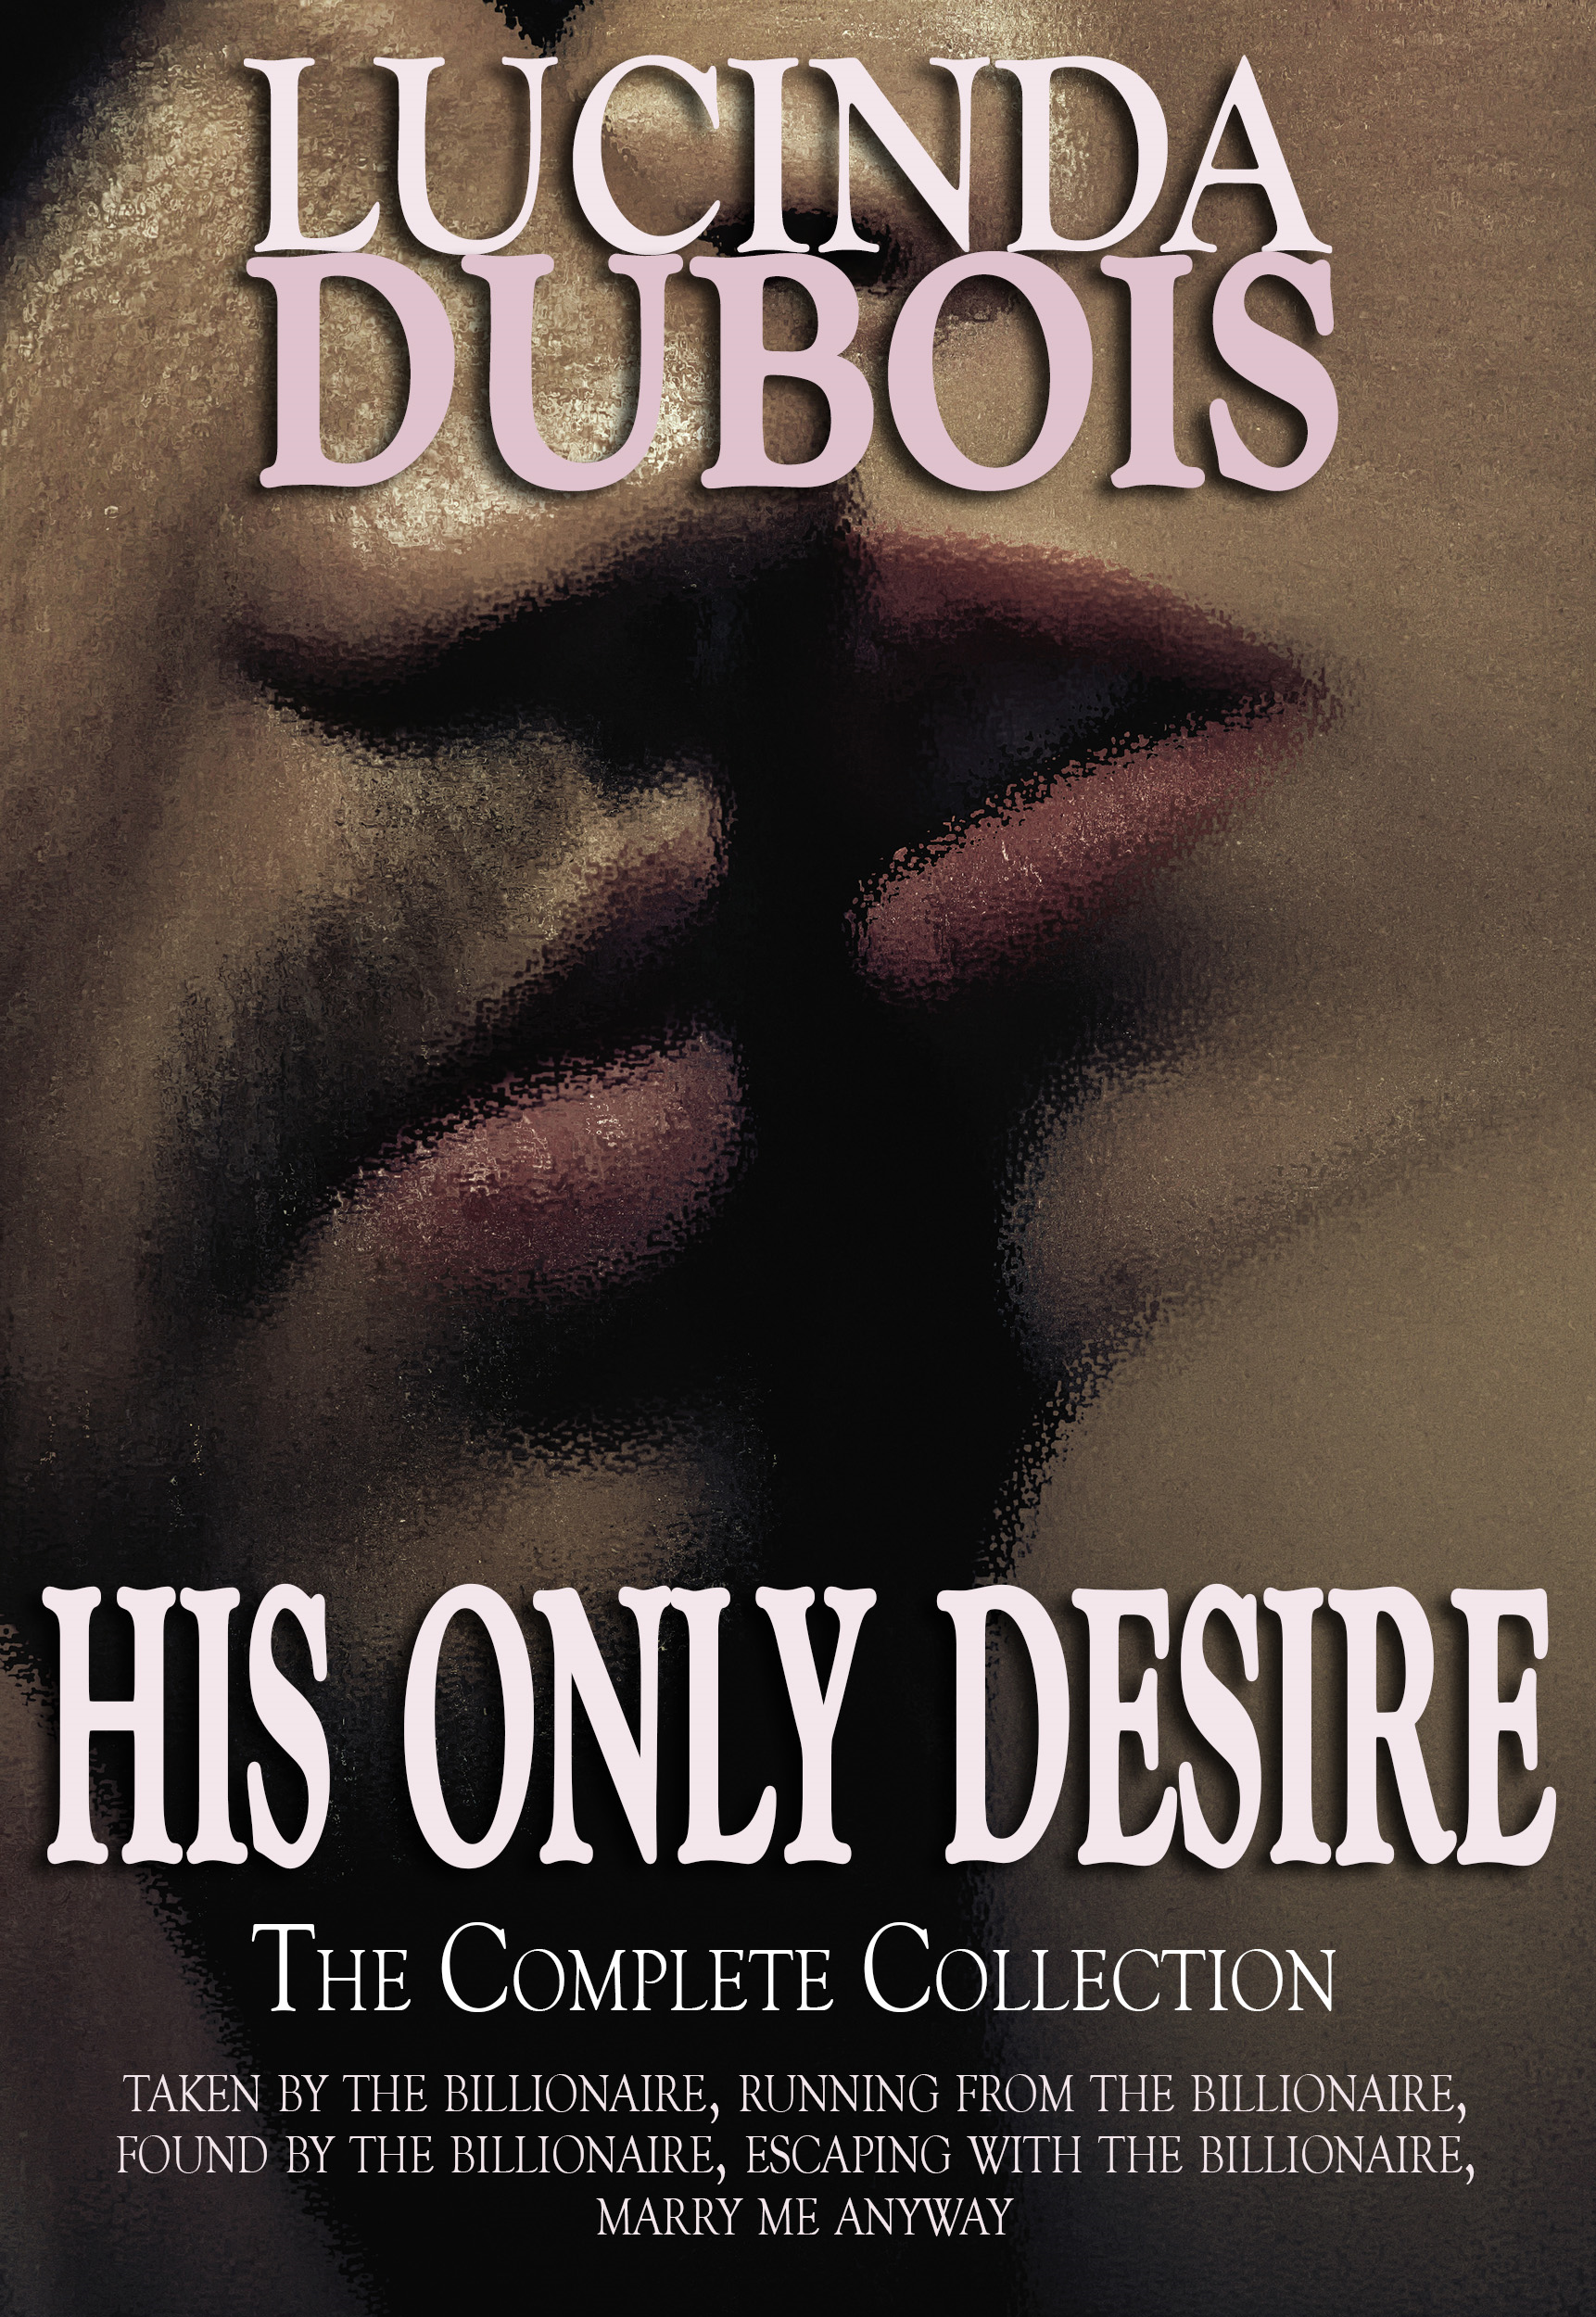 Lucinda DuBois - His Only Desire: The Complete Collection Boxed Set (Taken by the Billionaire, Running from the Billionaire, Found by the Billionaire, Escaping with the Billionaire, Marry Me Anyway)